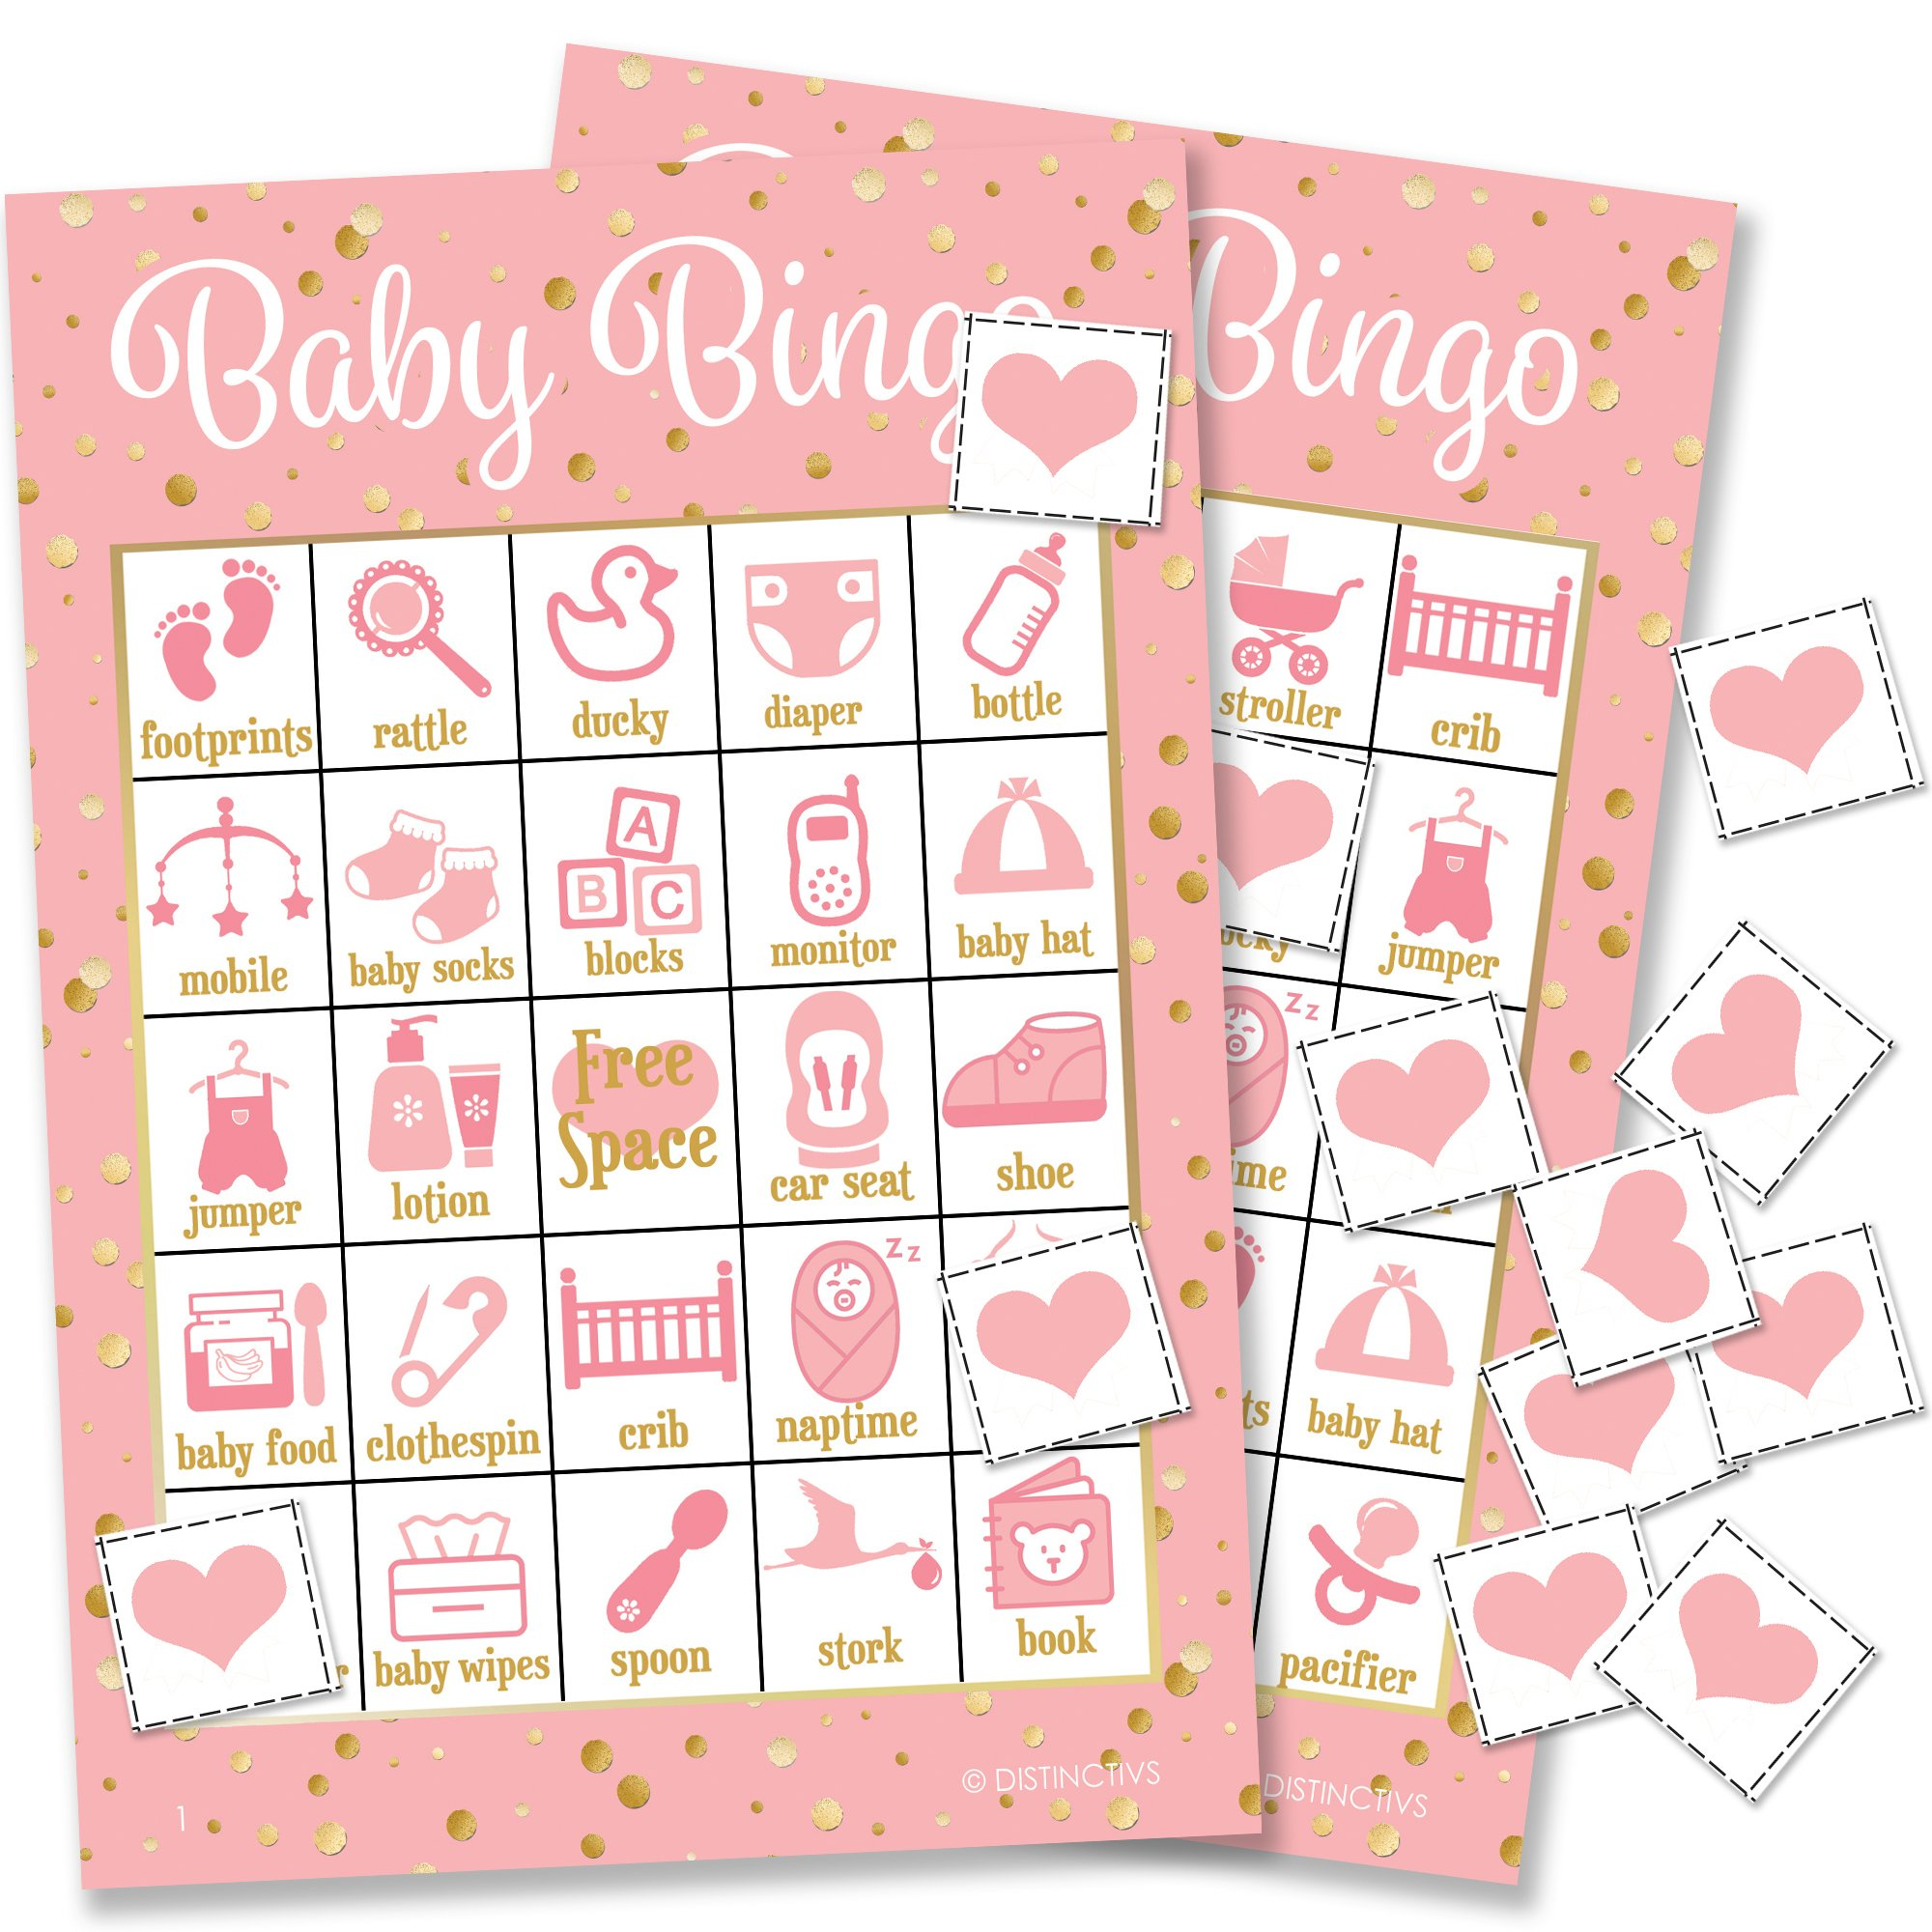 It's a Girl Baby Shower Bingo Game, Pink and Gold - 24 Guests by DISTINCTIVS